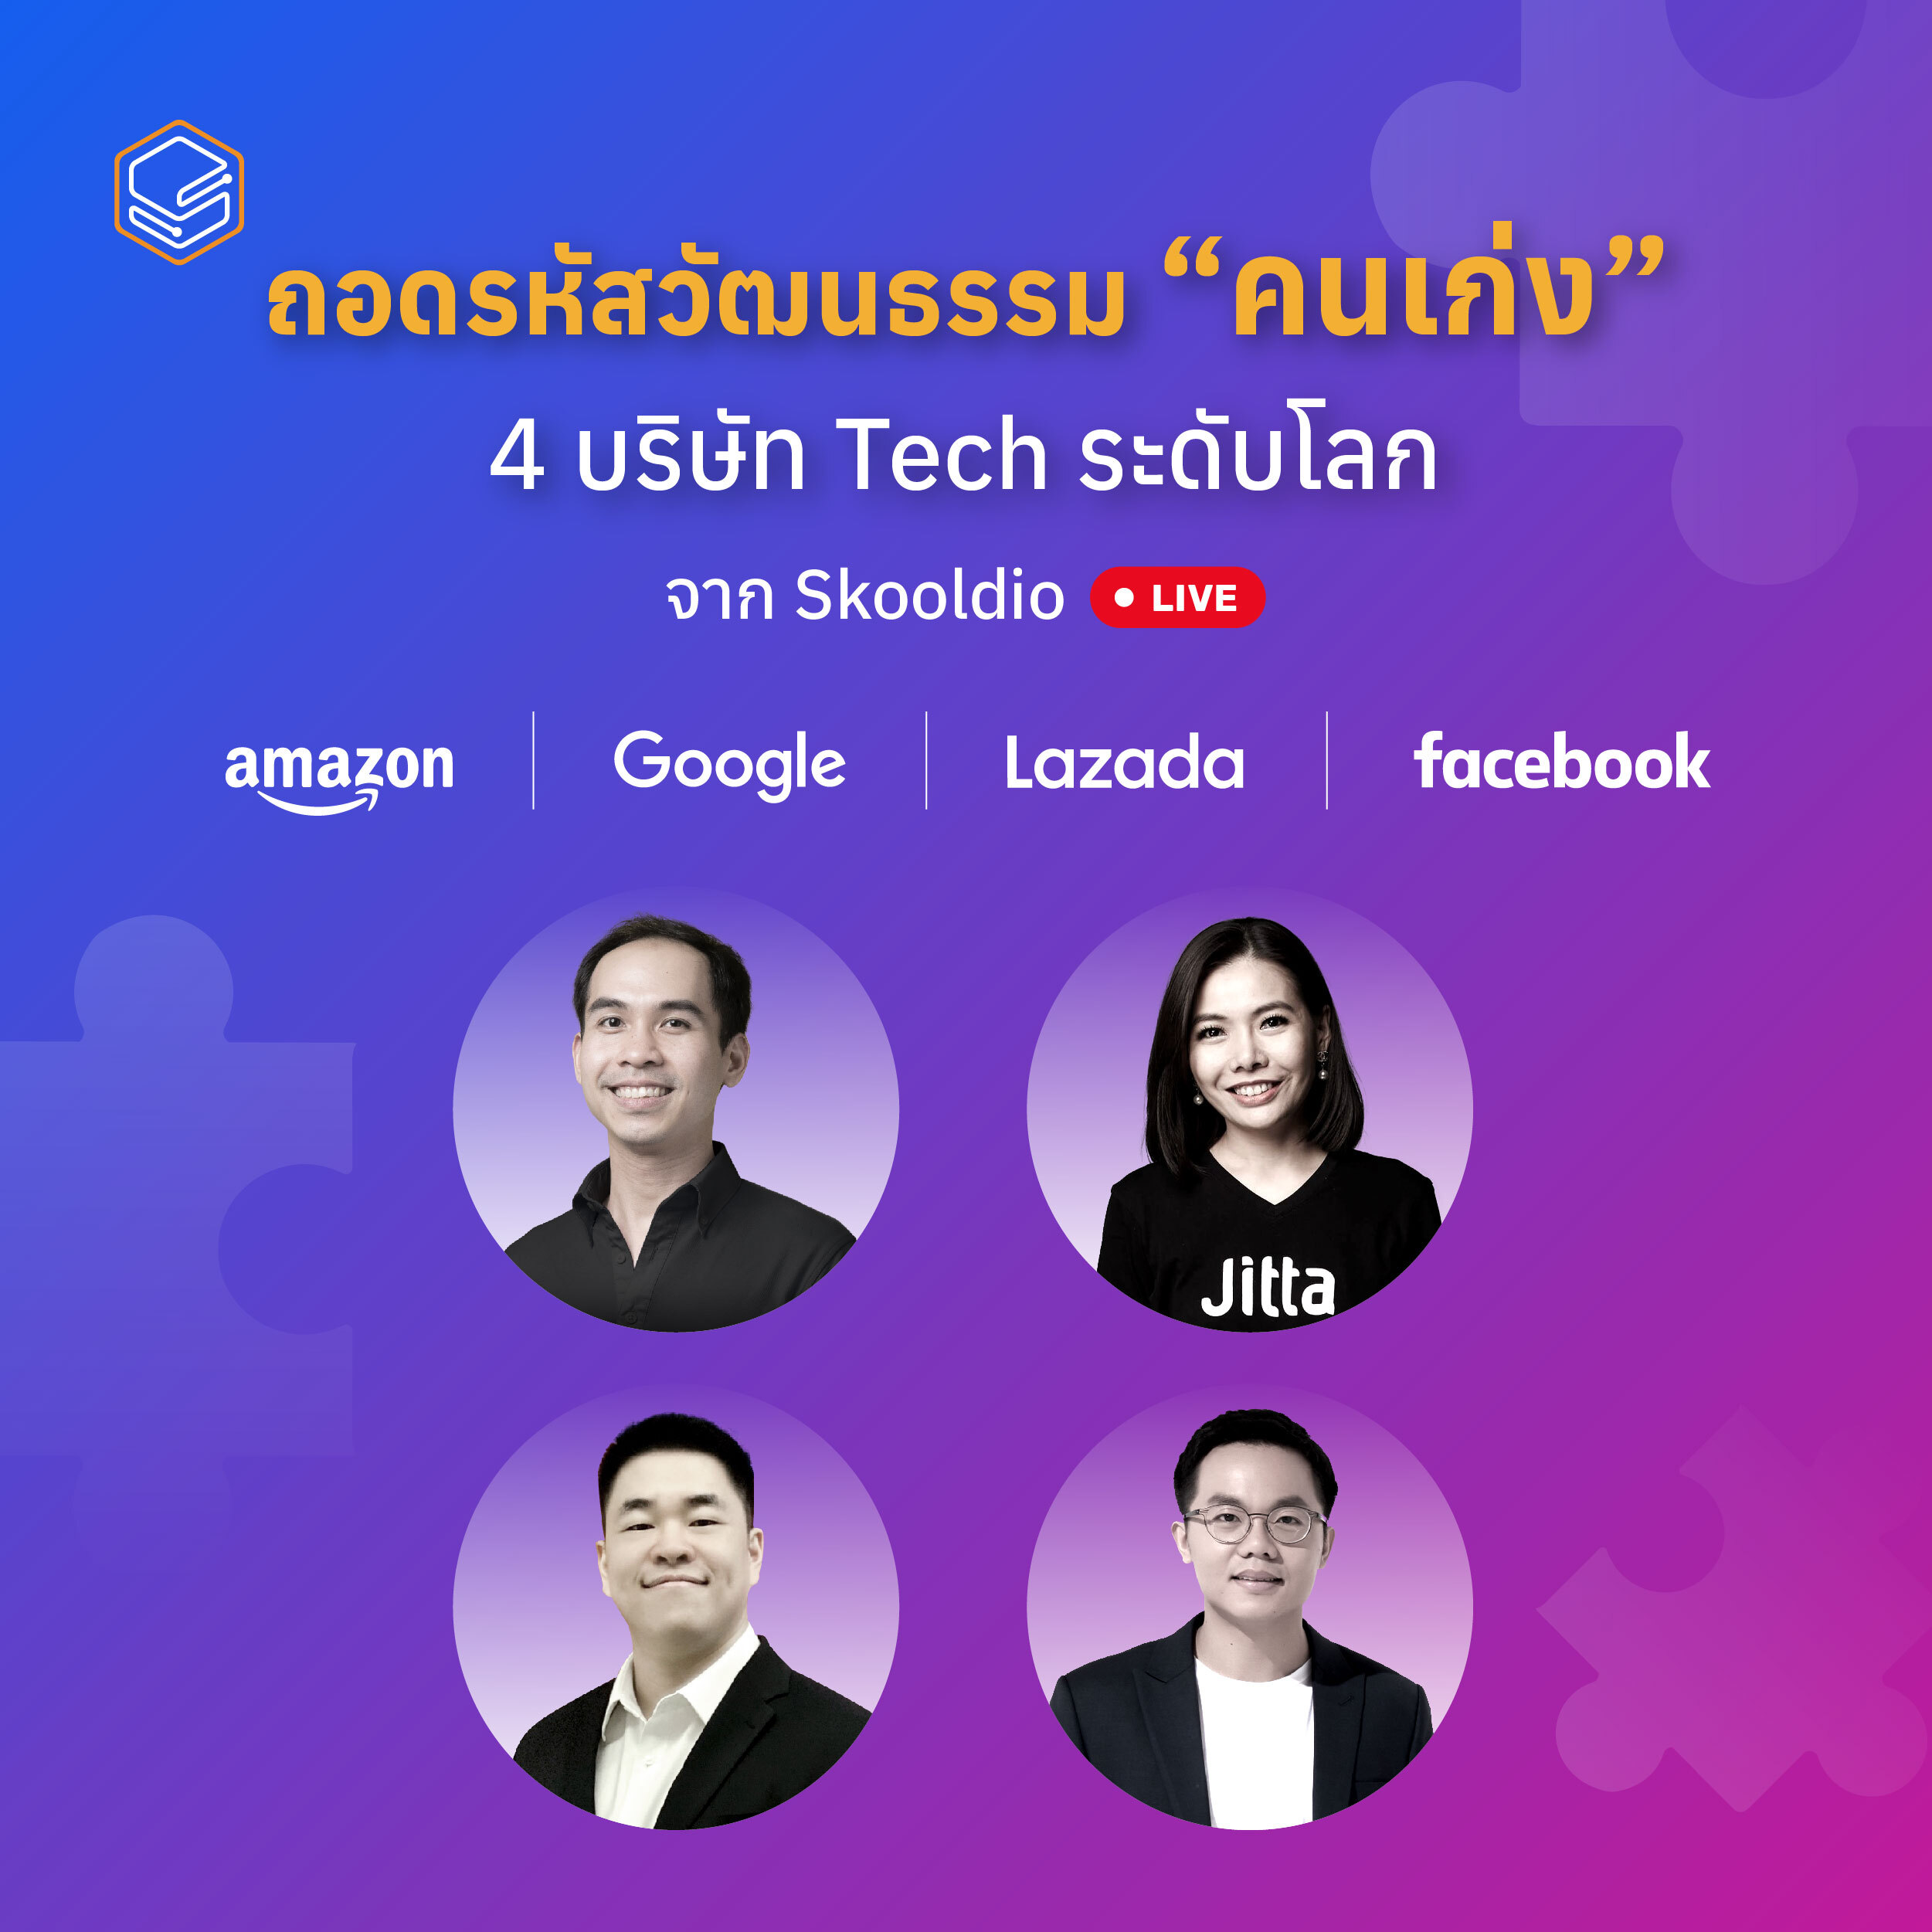 4 speakers from 4 tech giants. ถอดรหัสวัฒนธรรมคนเก่ง 4 บริษัท Tech ระดับโลก | Skooldio Blog - Tech Giants: How culture shapes the way they do things